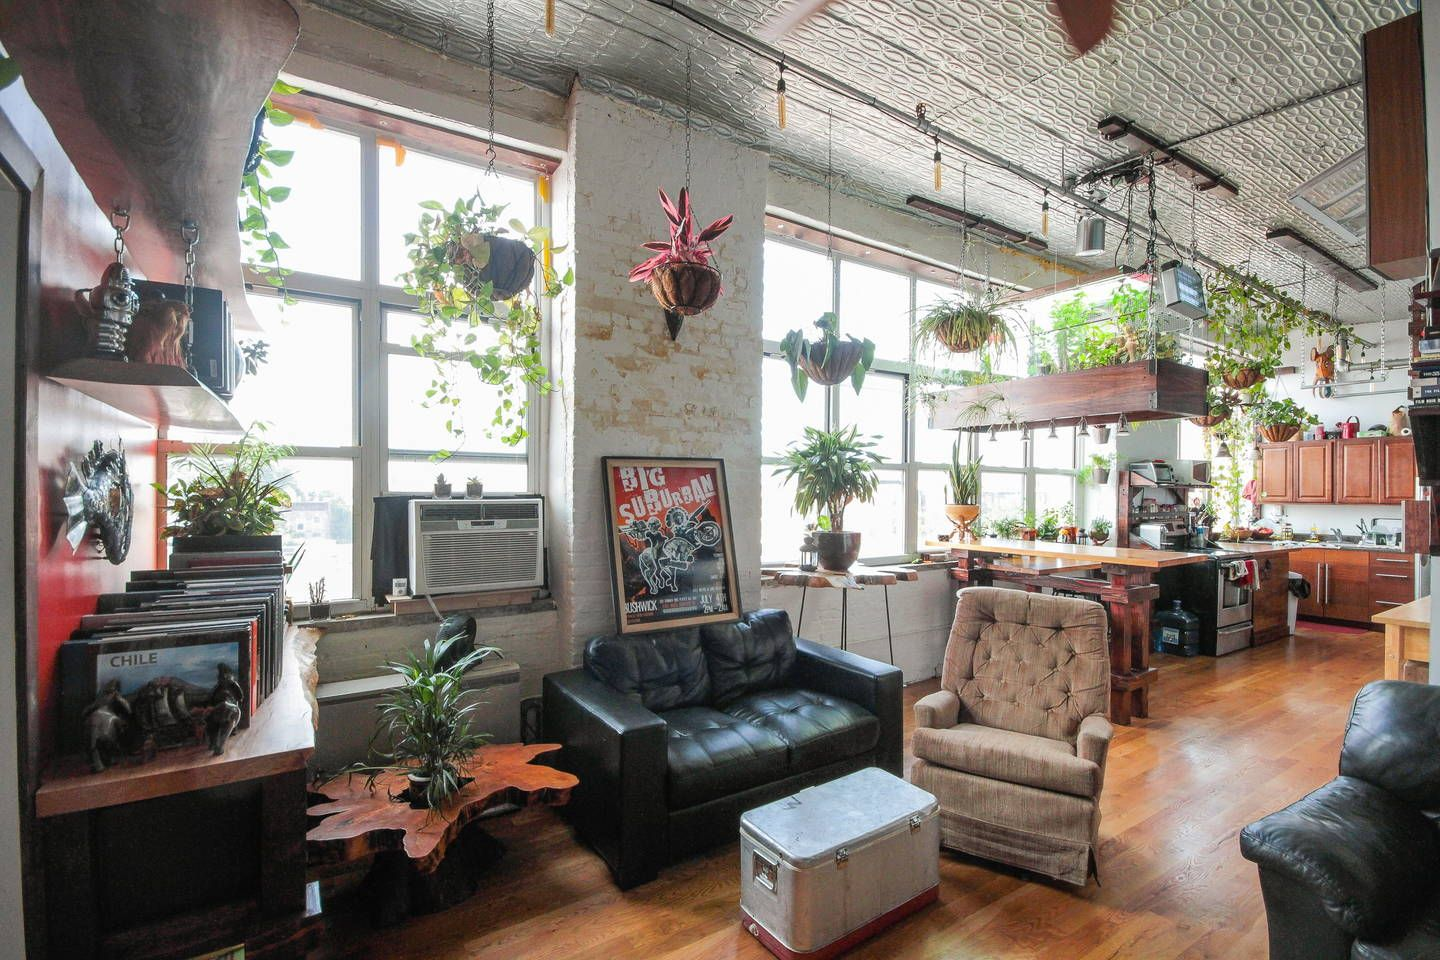 Bushwick Biodome Loft , Great View! Apartments for Rent